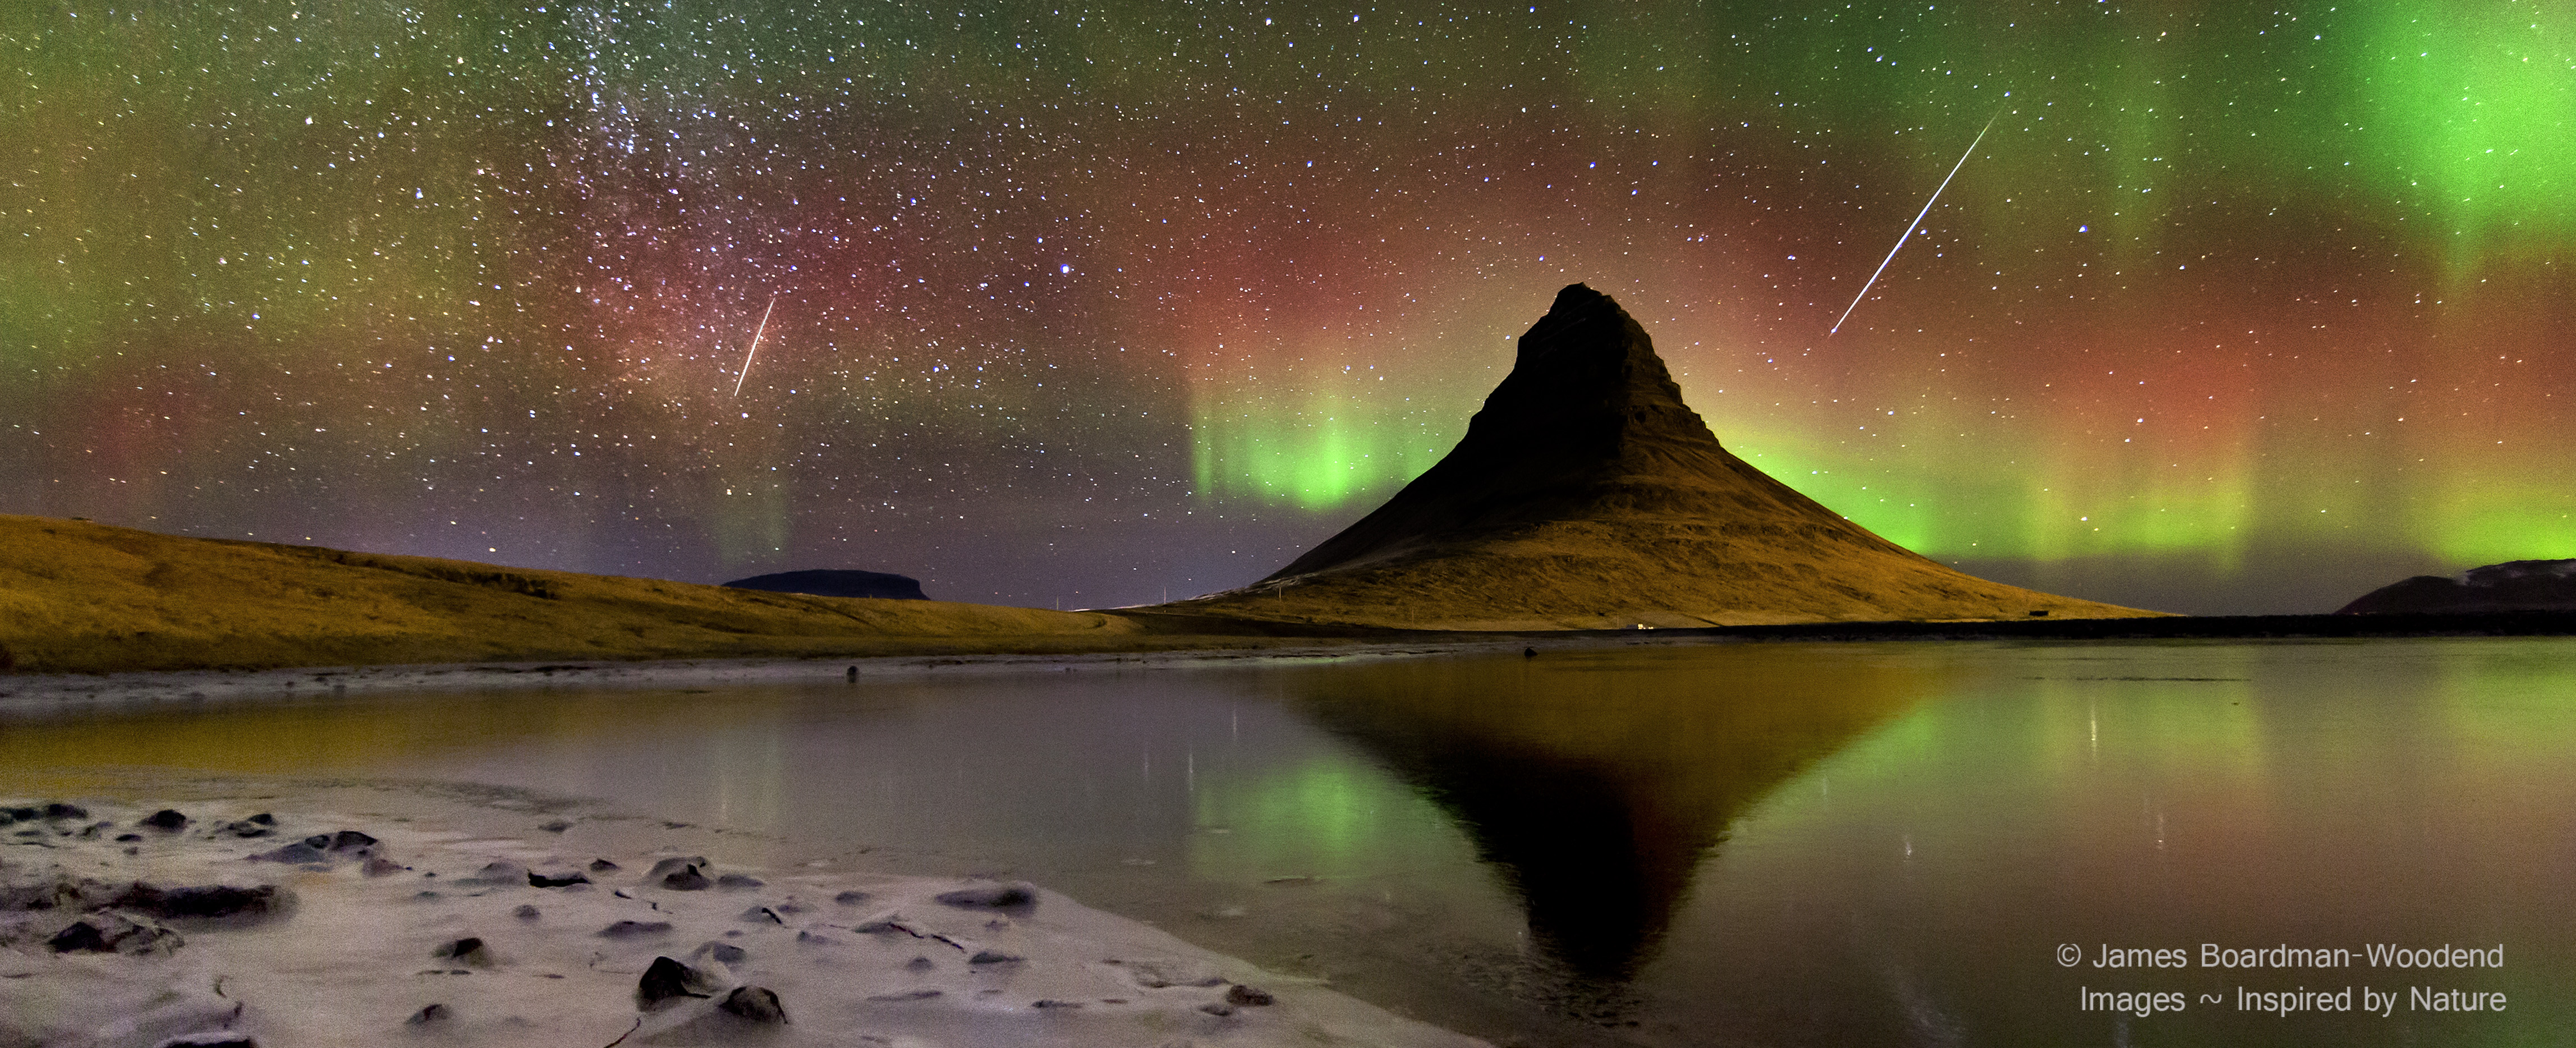 2013 August 7 - Meteors and Aurorae over Iceland